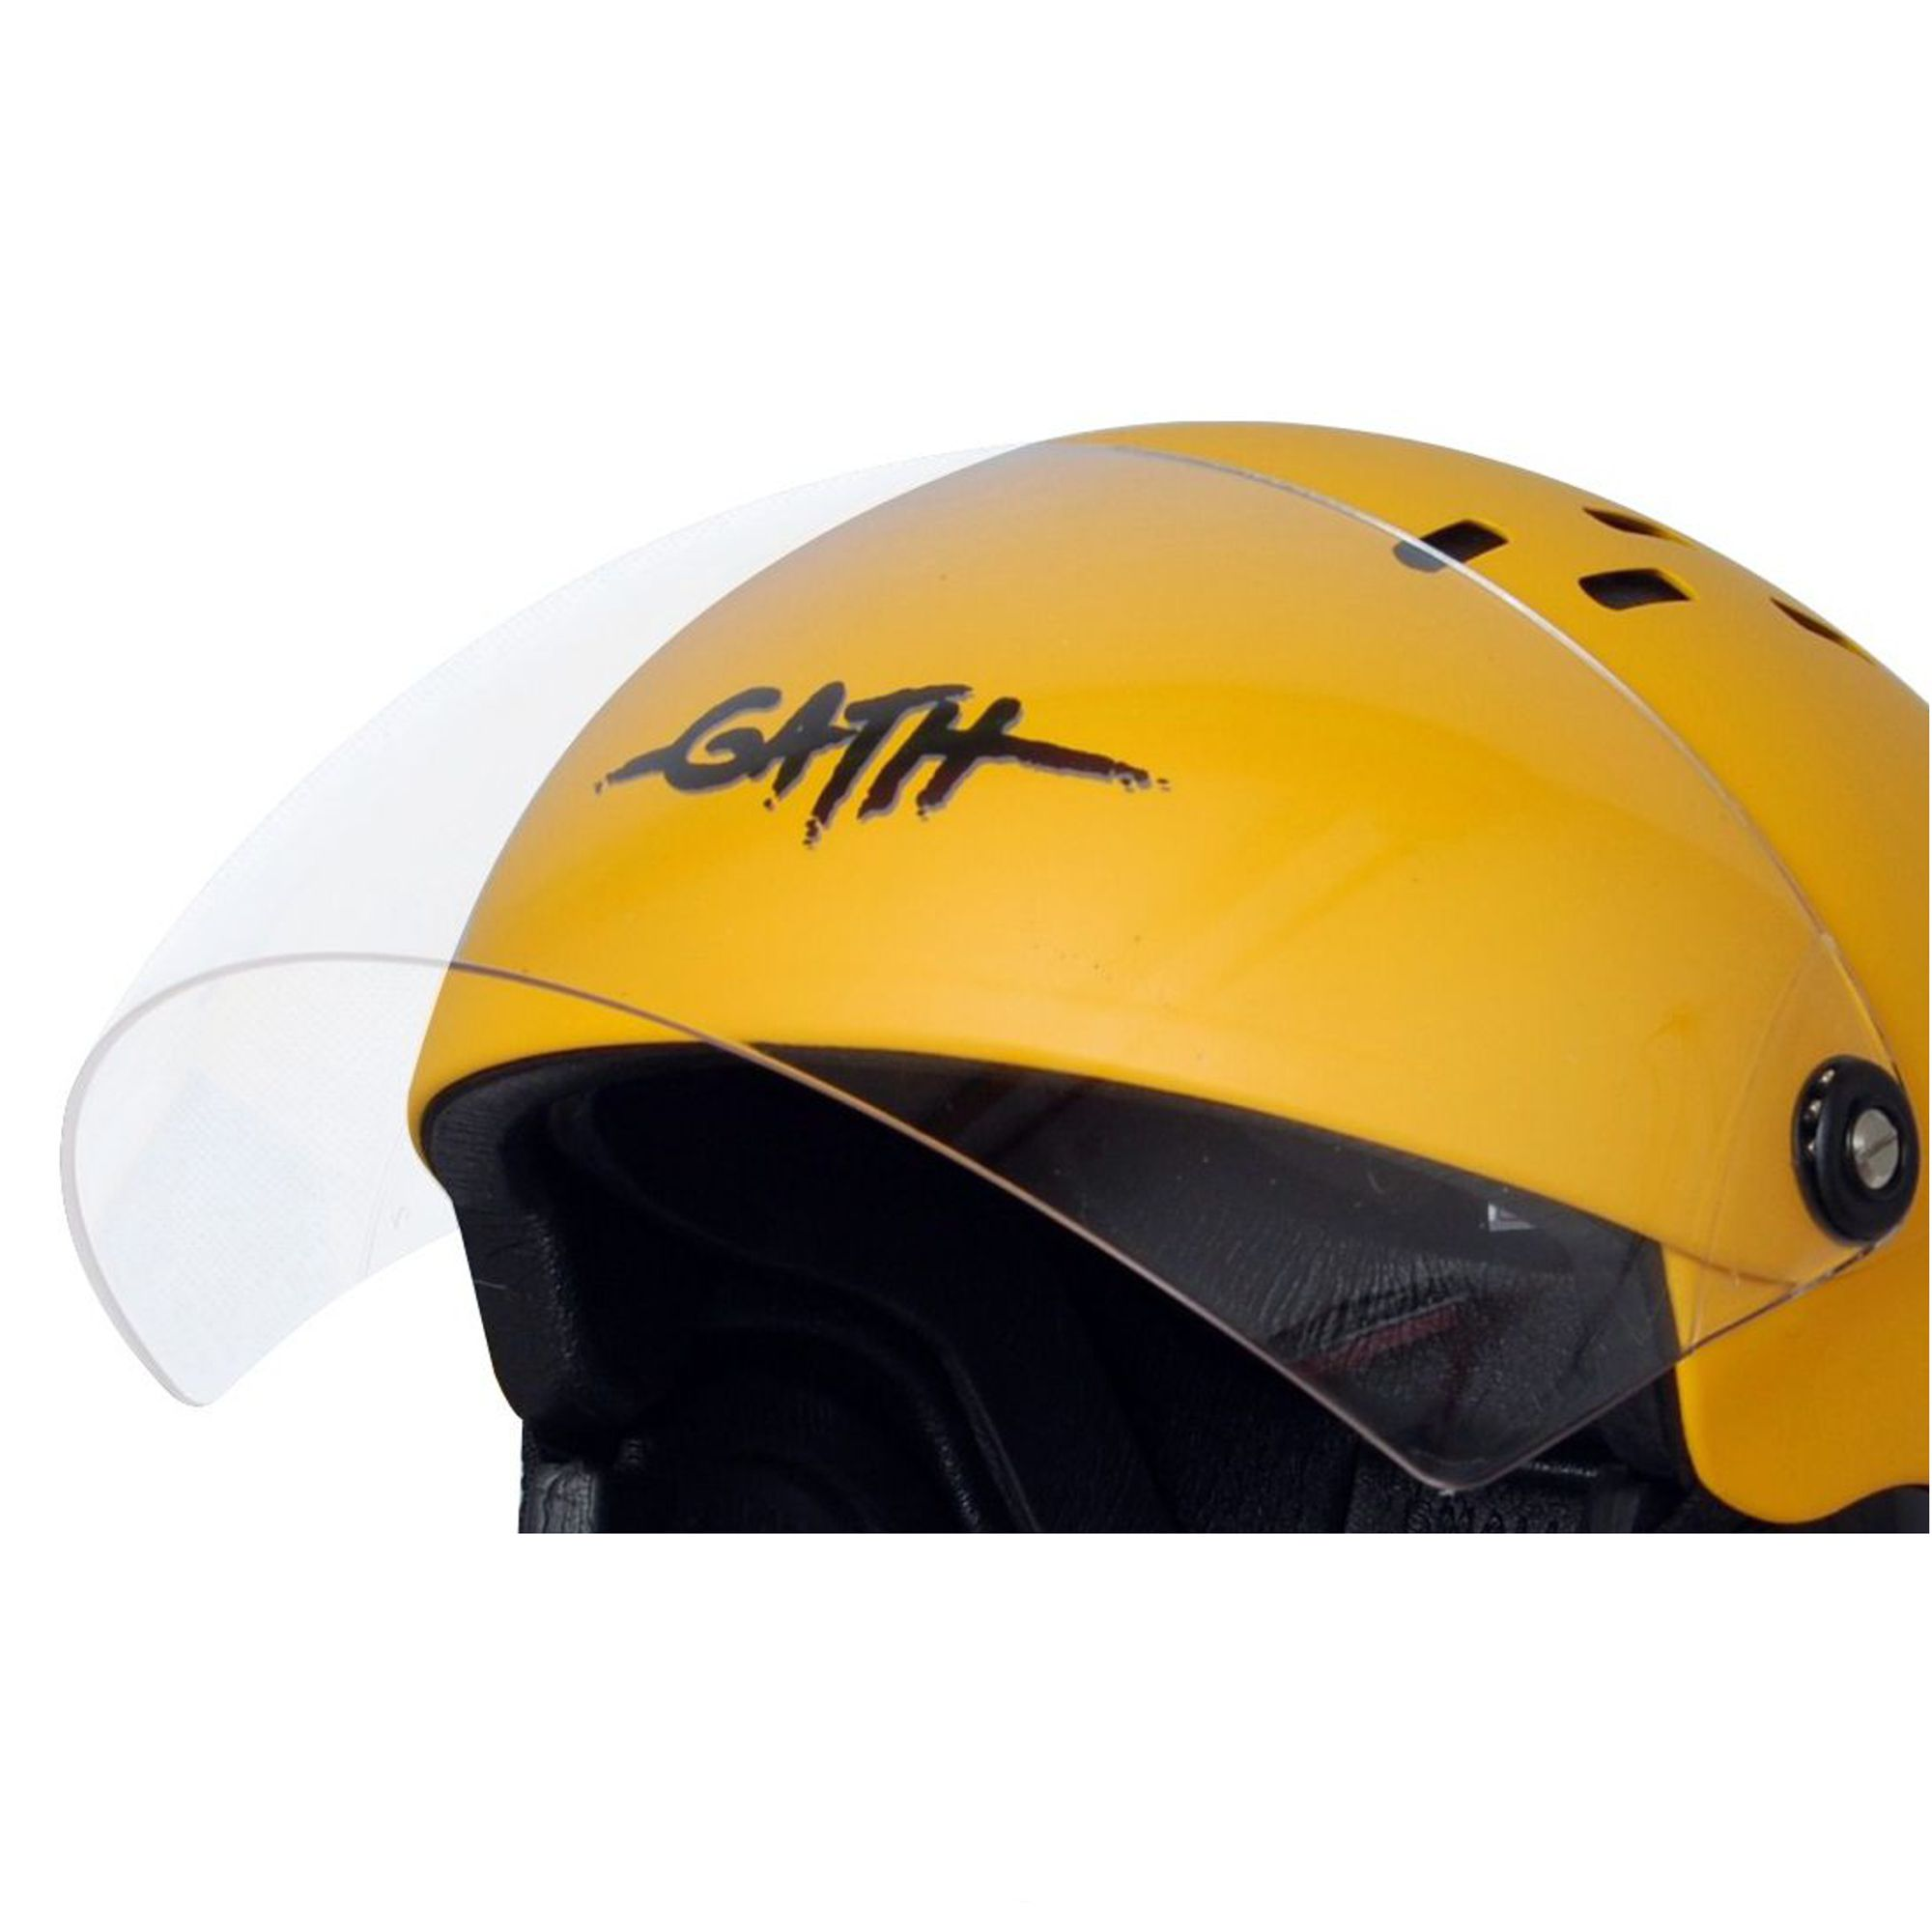 GATH Full Face Visor Size 3 Vollvisier Klar